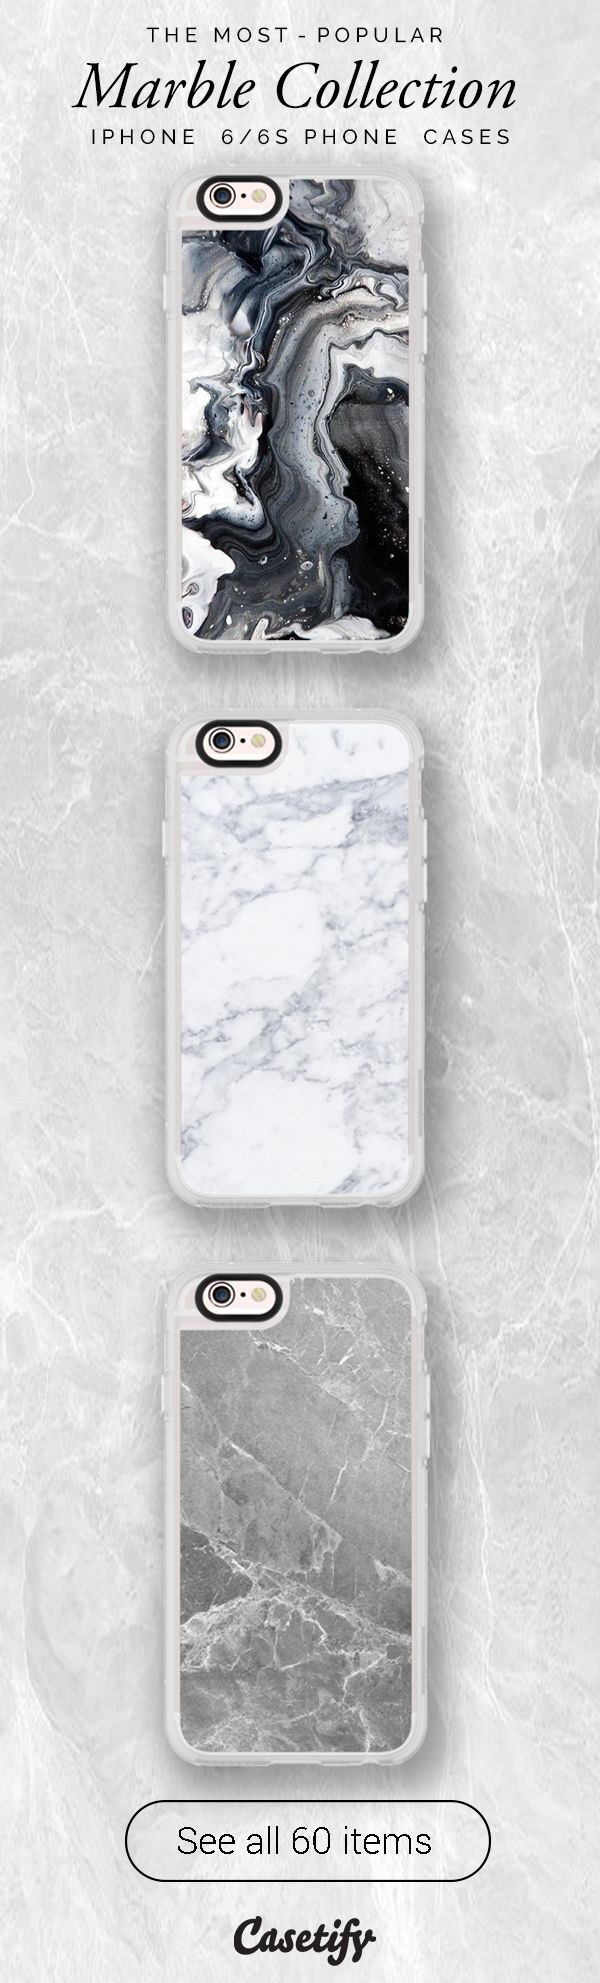 All time favourite marble iPhone 6 protective phone case designs. Marble never go out of style! | Click through to see more iphone phone case ideas >>> https://www.casetify.com/collections/marble/ | @casetify